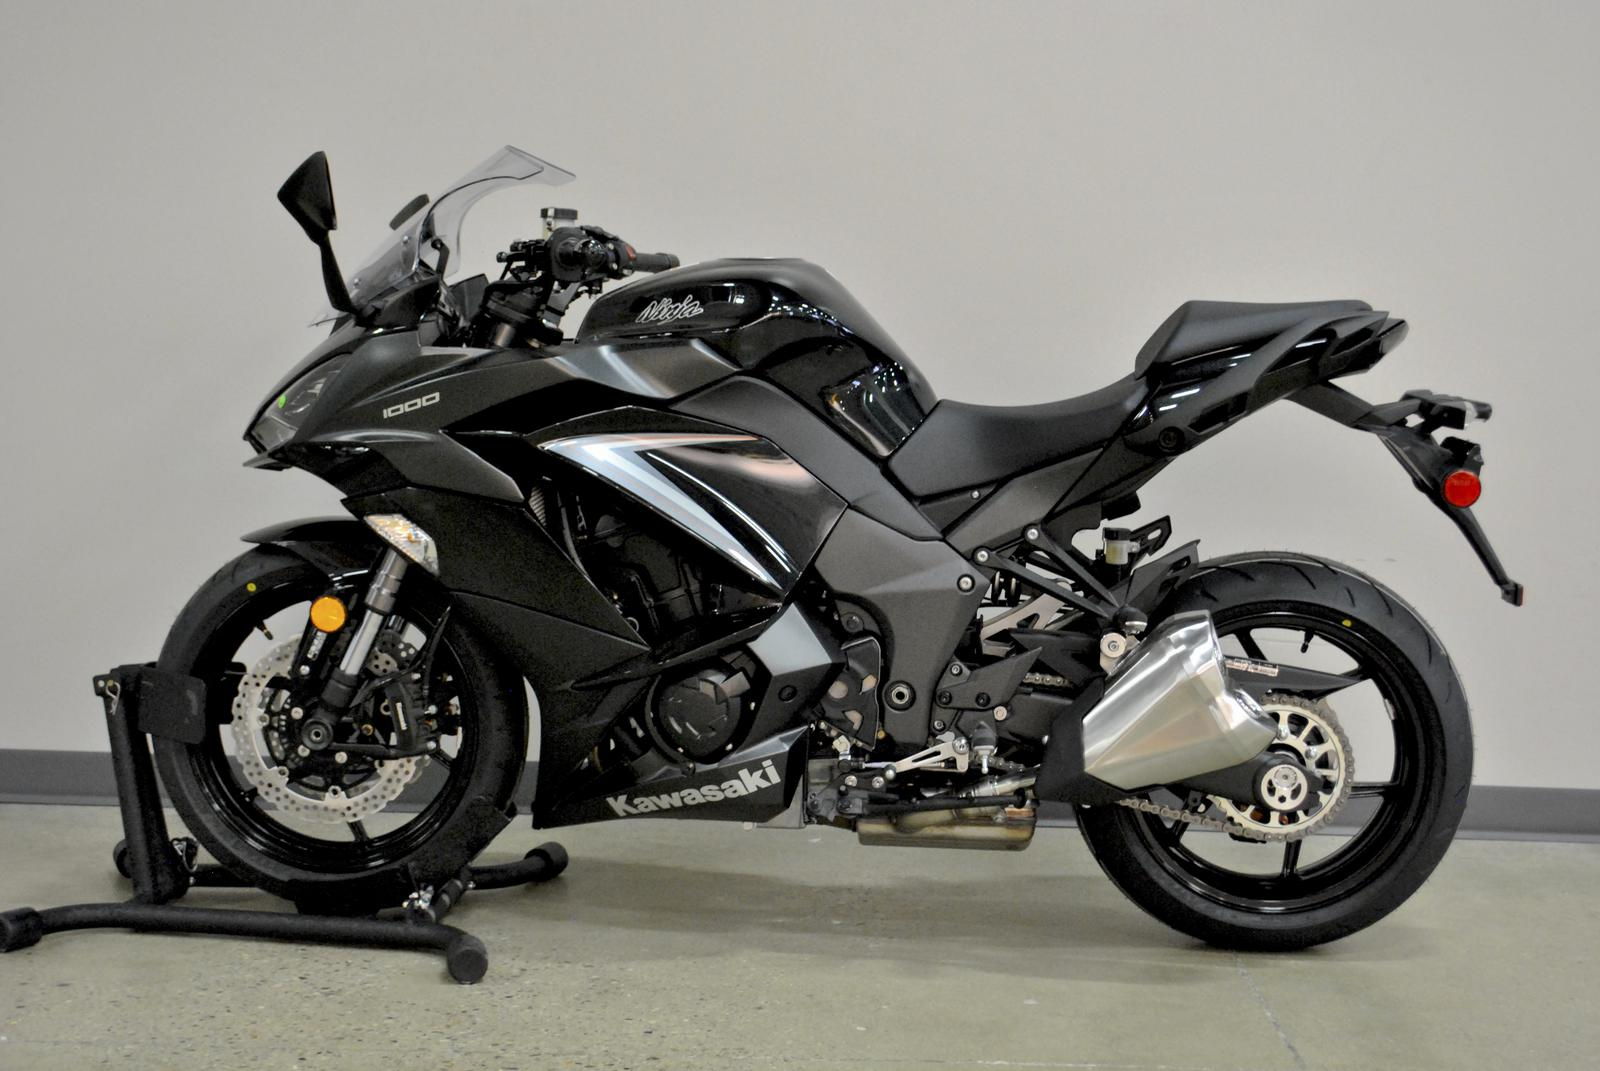 2019 Kawasaki Ninja 1000 Abs Zx1000wkf For Sale In Indianapolis